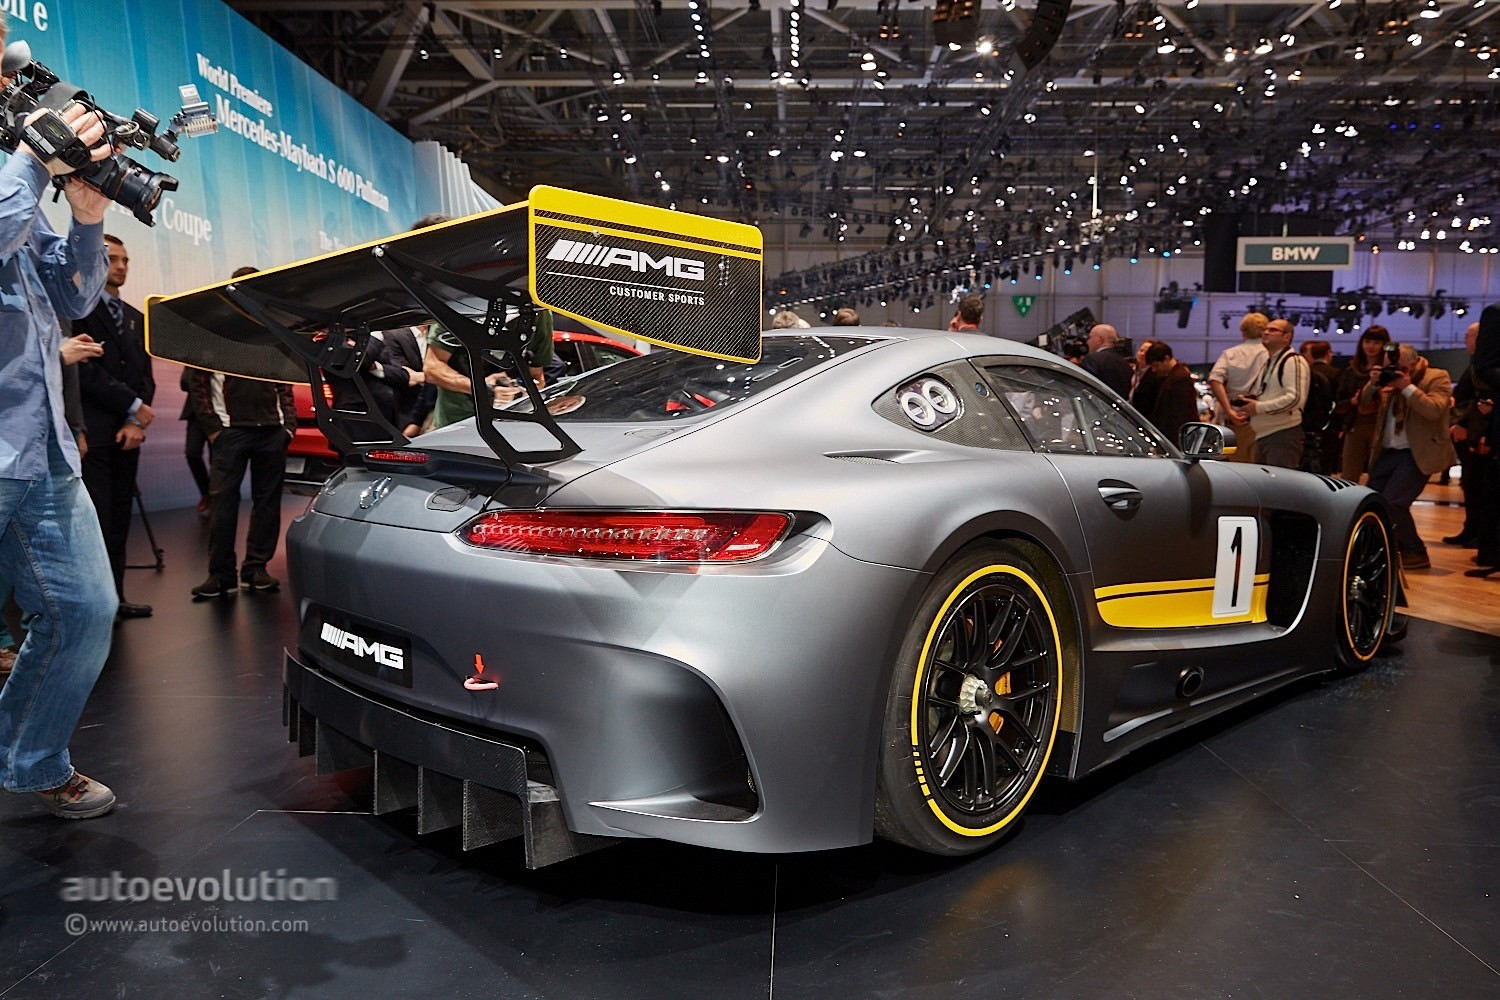 The Amg Gt3 Is Geneva S Mad Knight In Shining Carbon Fiber